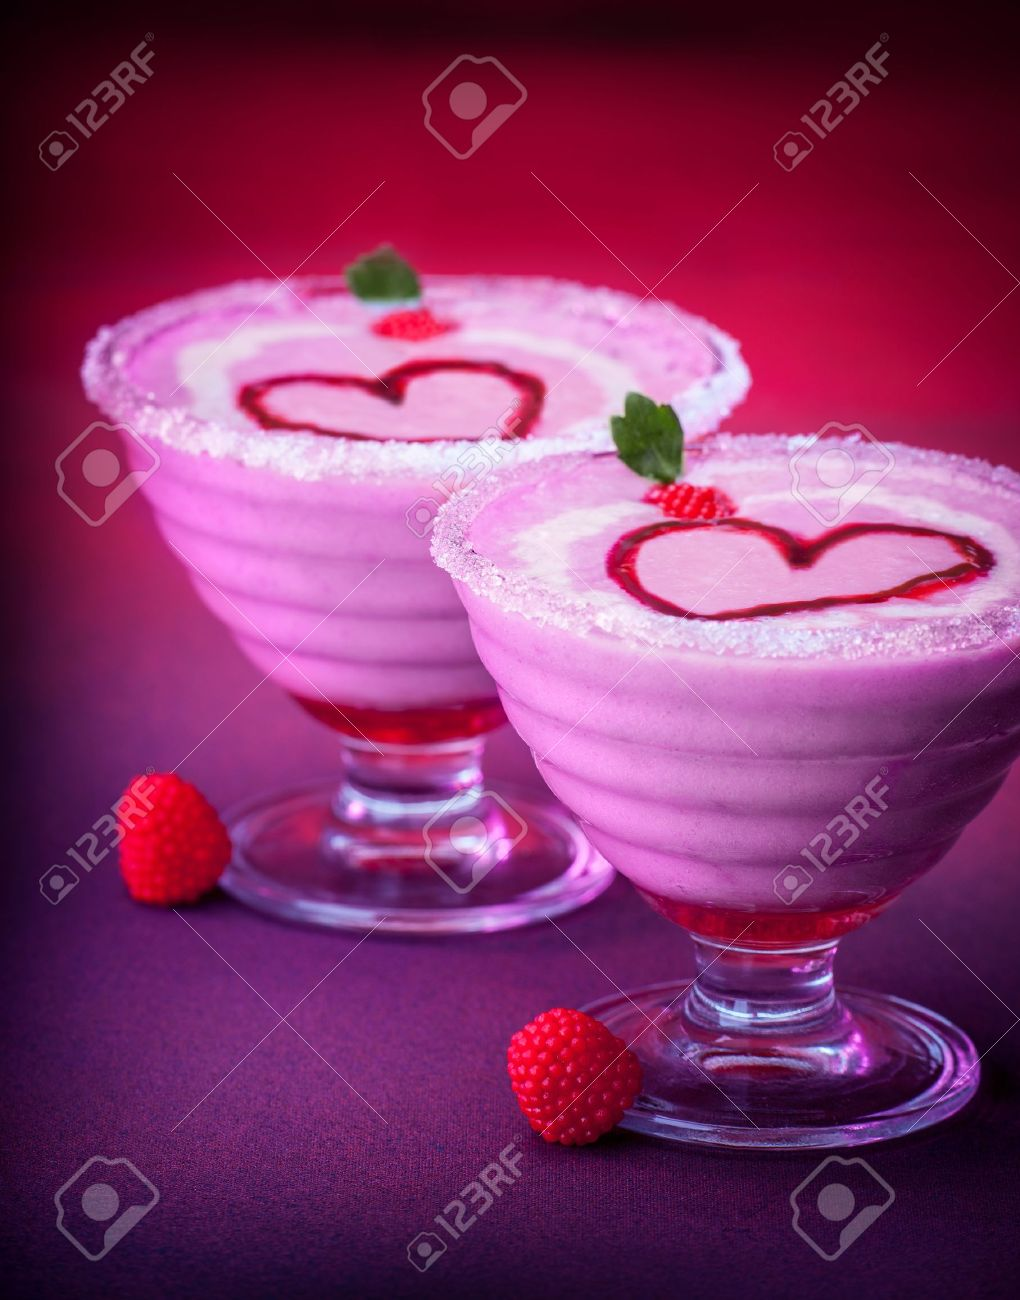 Picture Of Delicious Dessert For Valentine Day Romantic Dinner